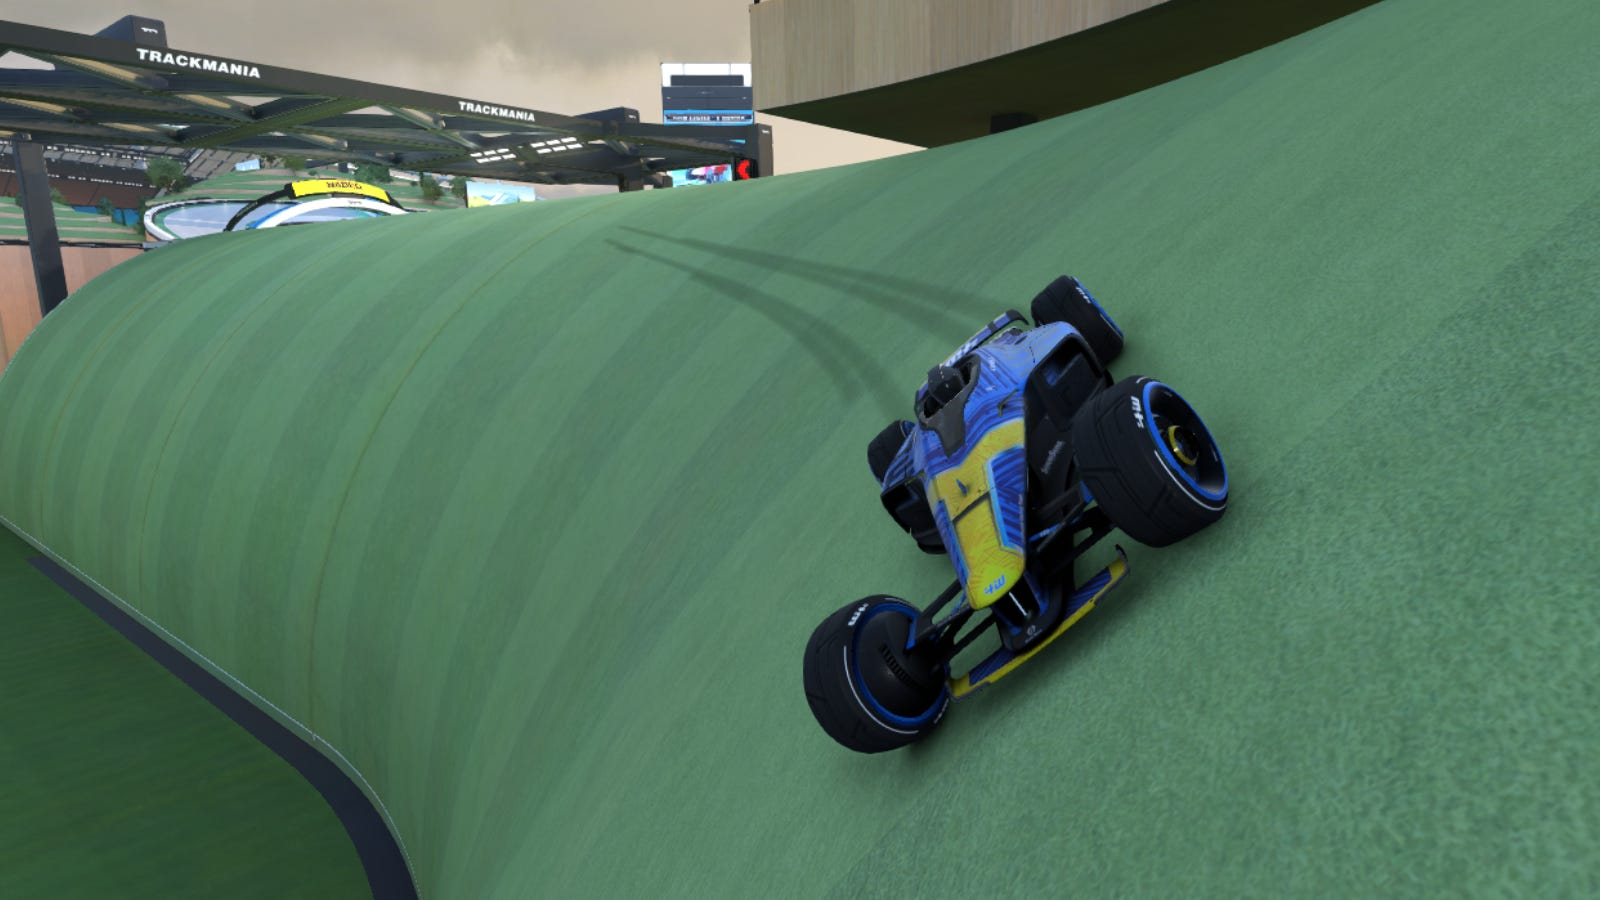 Car racing along grassy hill in 'Trackmania'